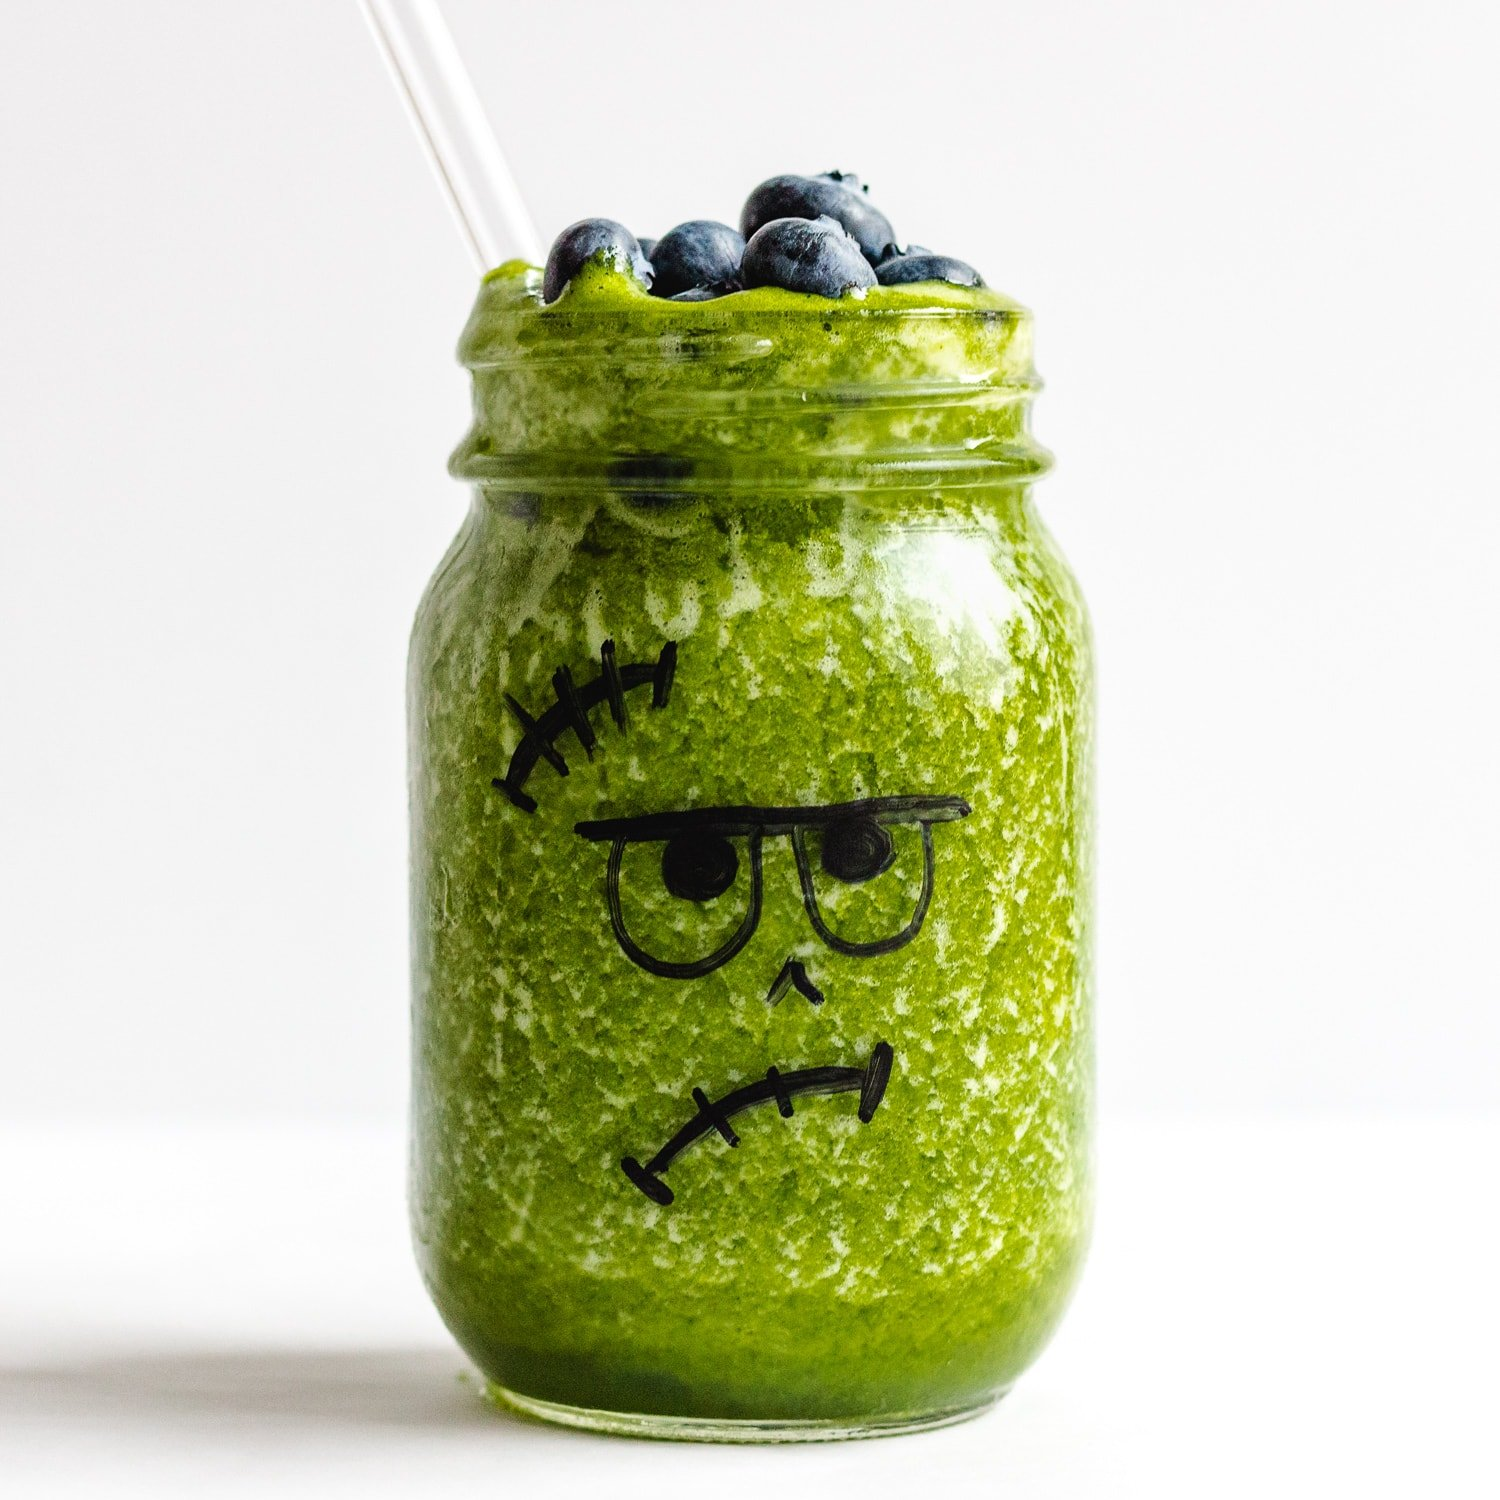 Frankenstein Green Smoothie - green smoothie poured into a jar that has a Frankenstein face drawn on and topped with blueberries